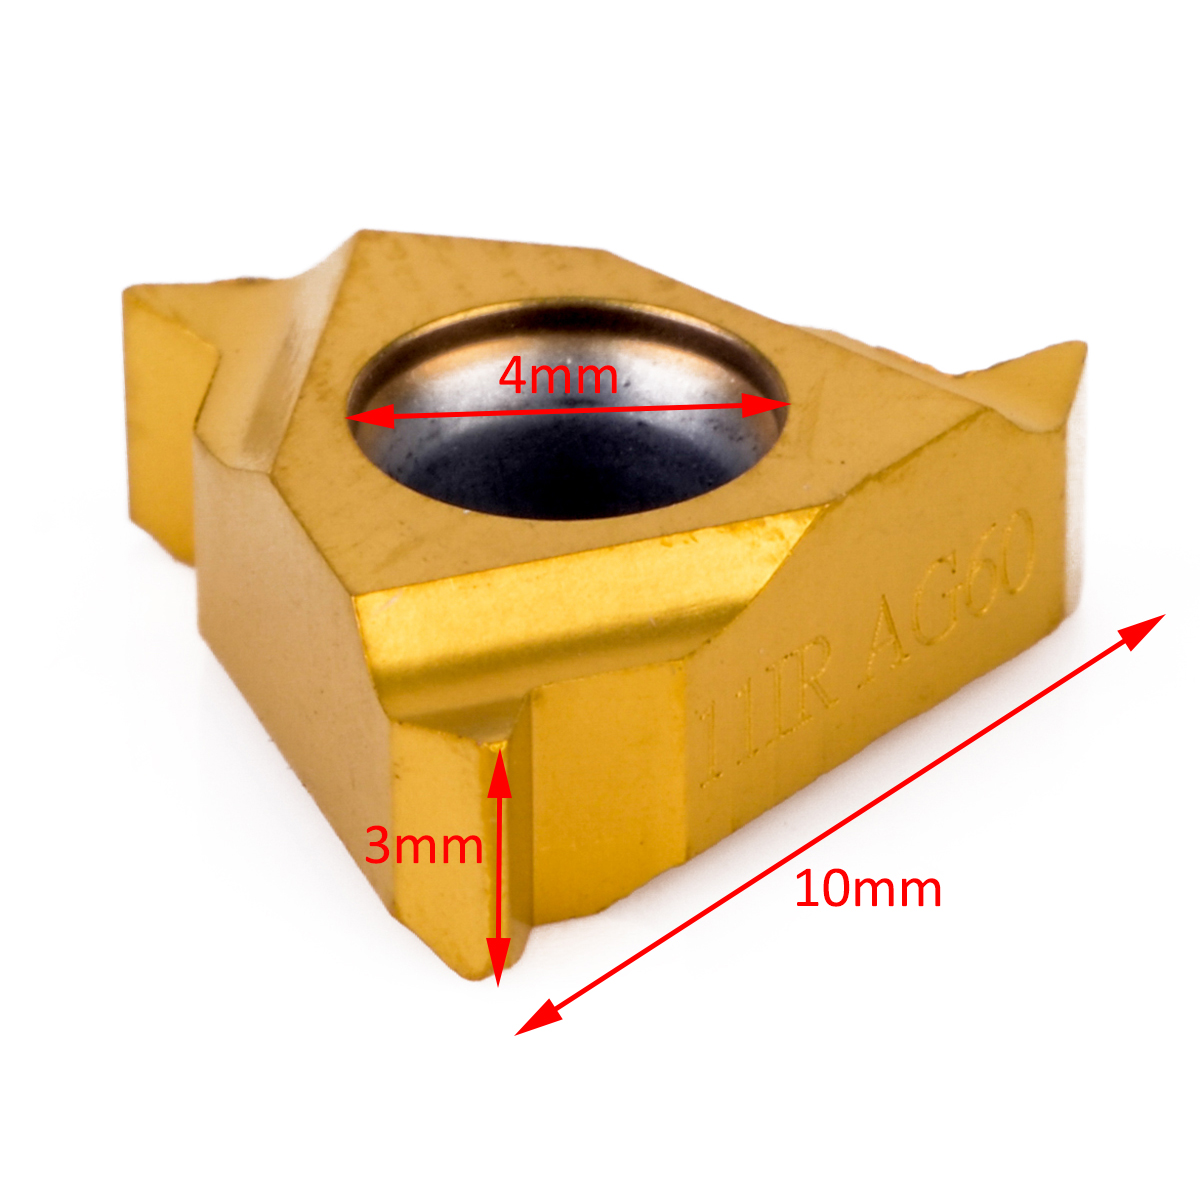 1pc Carbide Insert 11IR AG60 Cemented Cutter Mayitr For Threading Turing Tool Holder Boring Bar